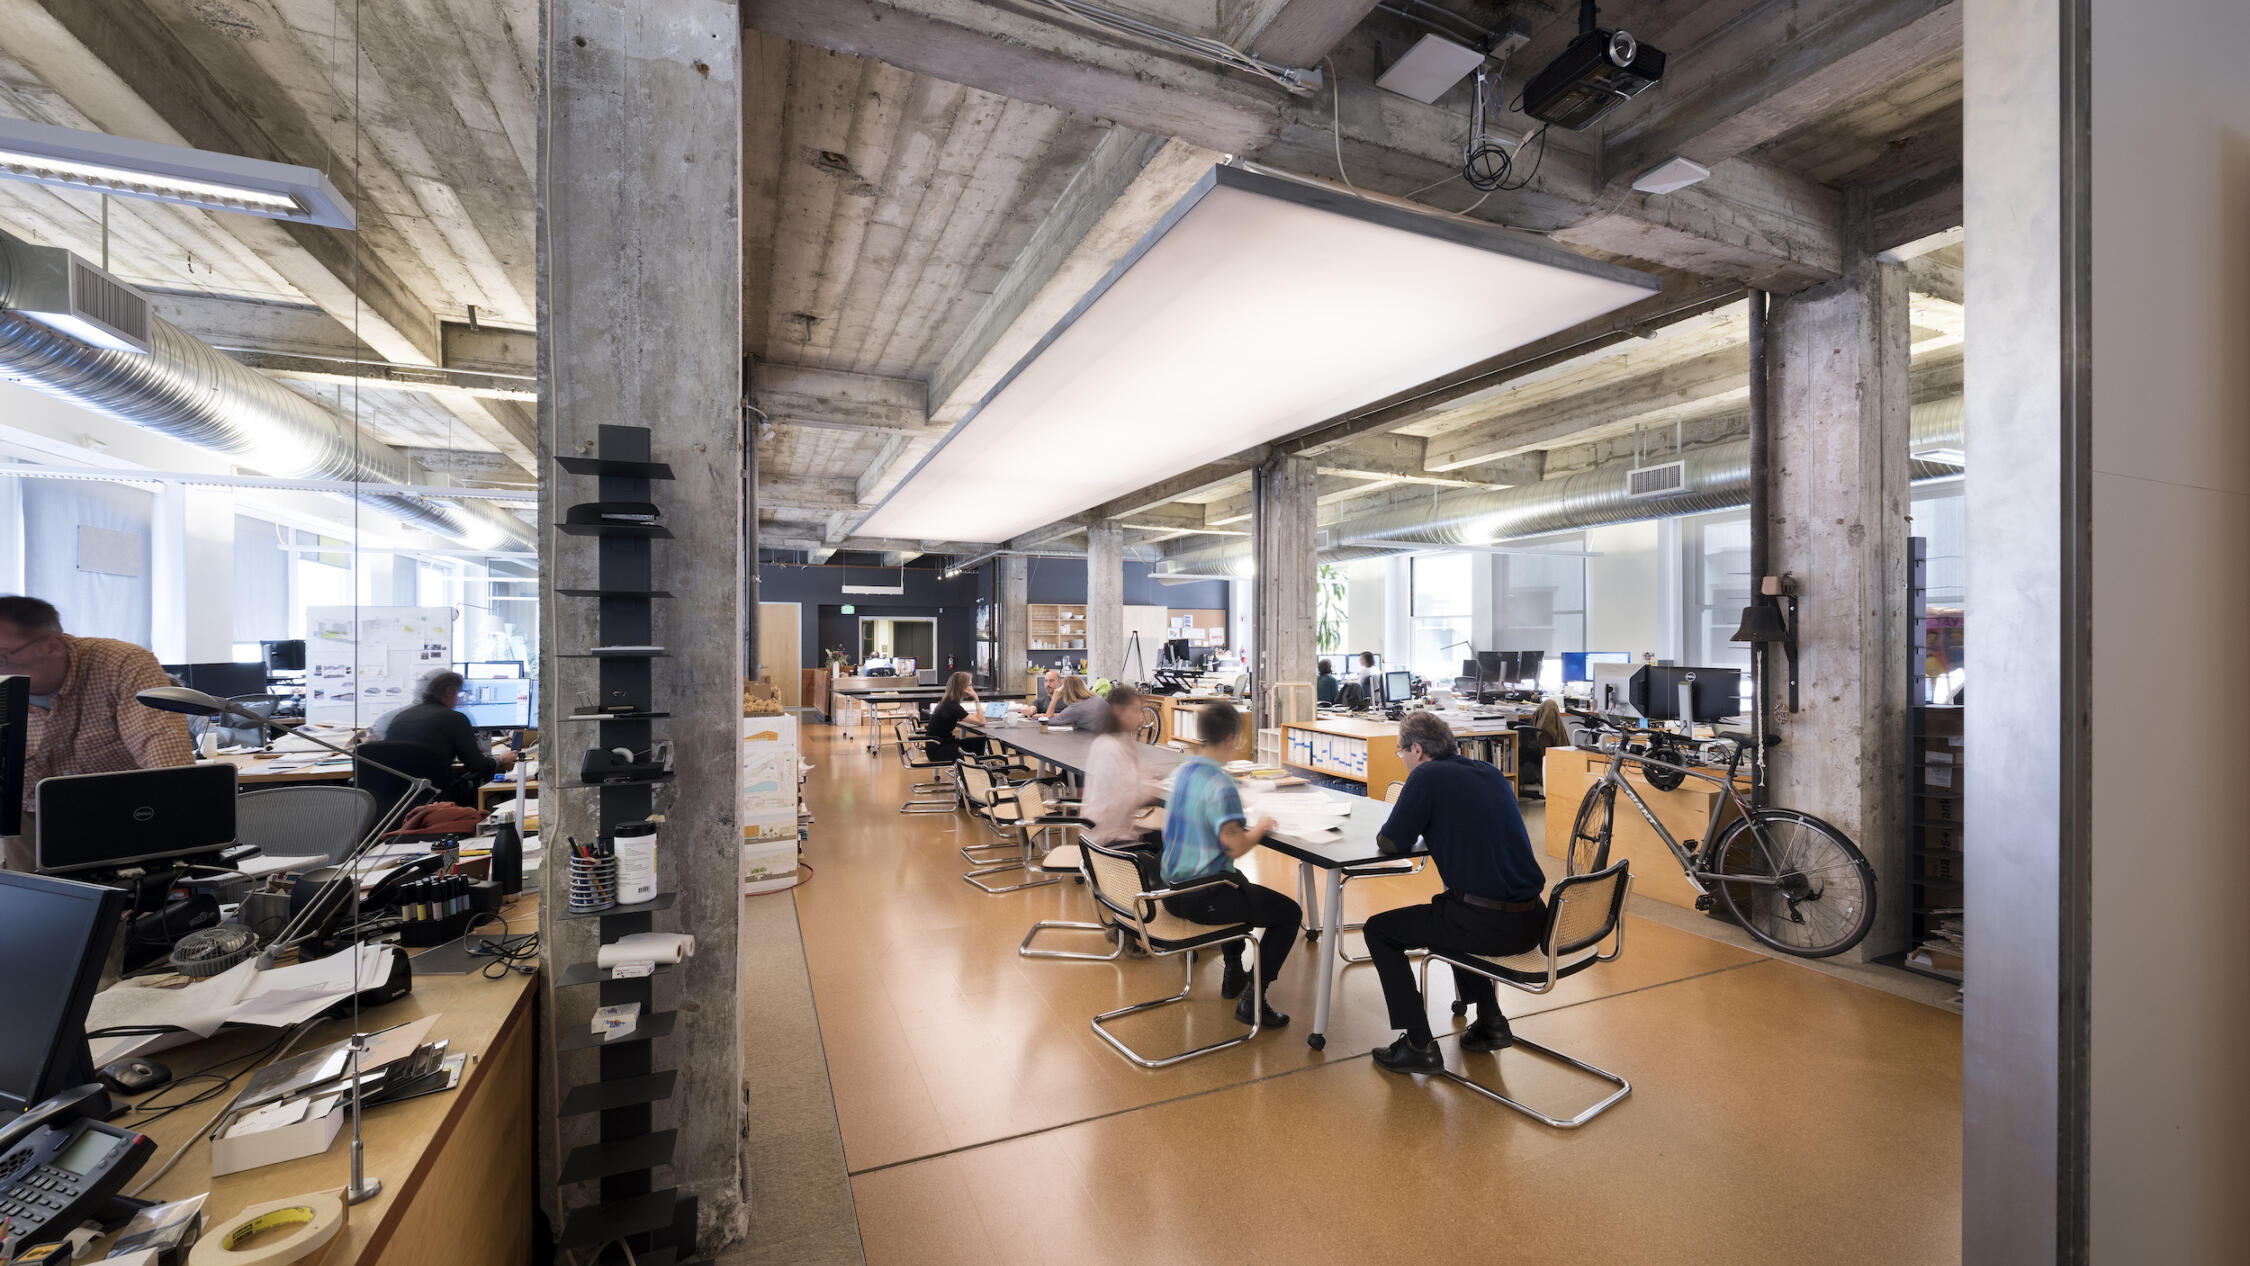 660 Market office with employees at workspaces